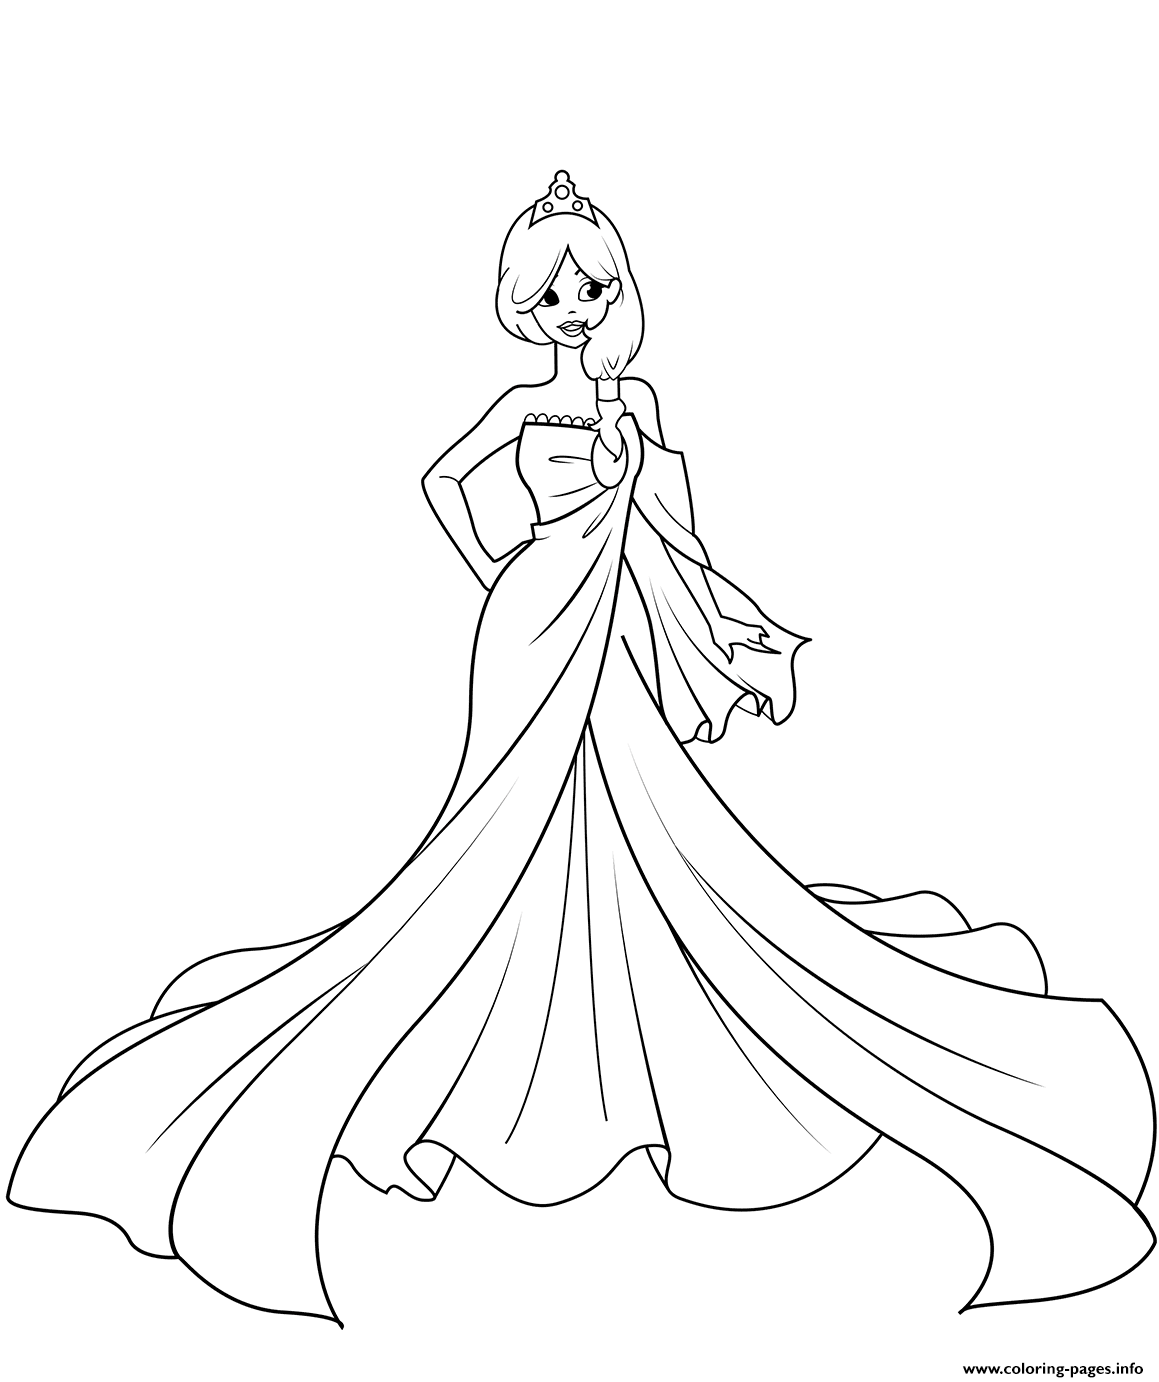 cute princess coloring pages cute princess for girls coloring pages printable cute princess pages coloring